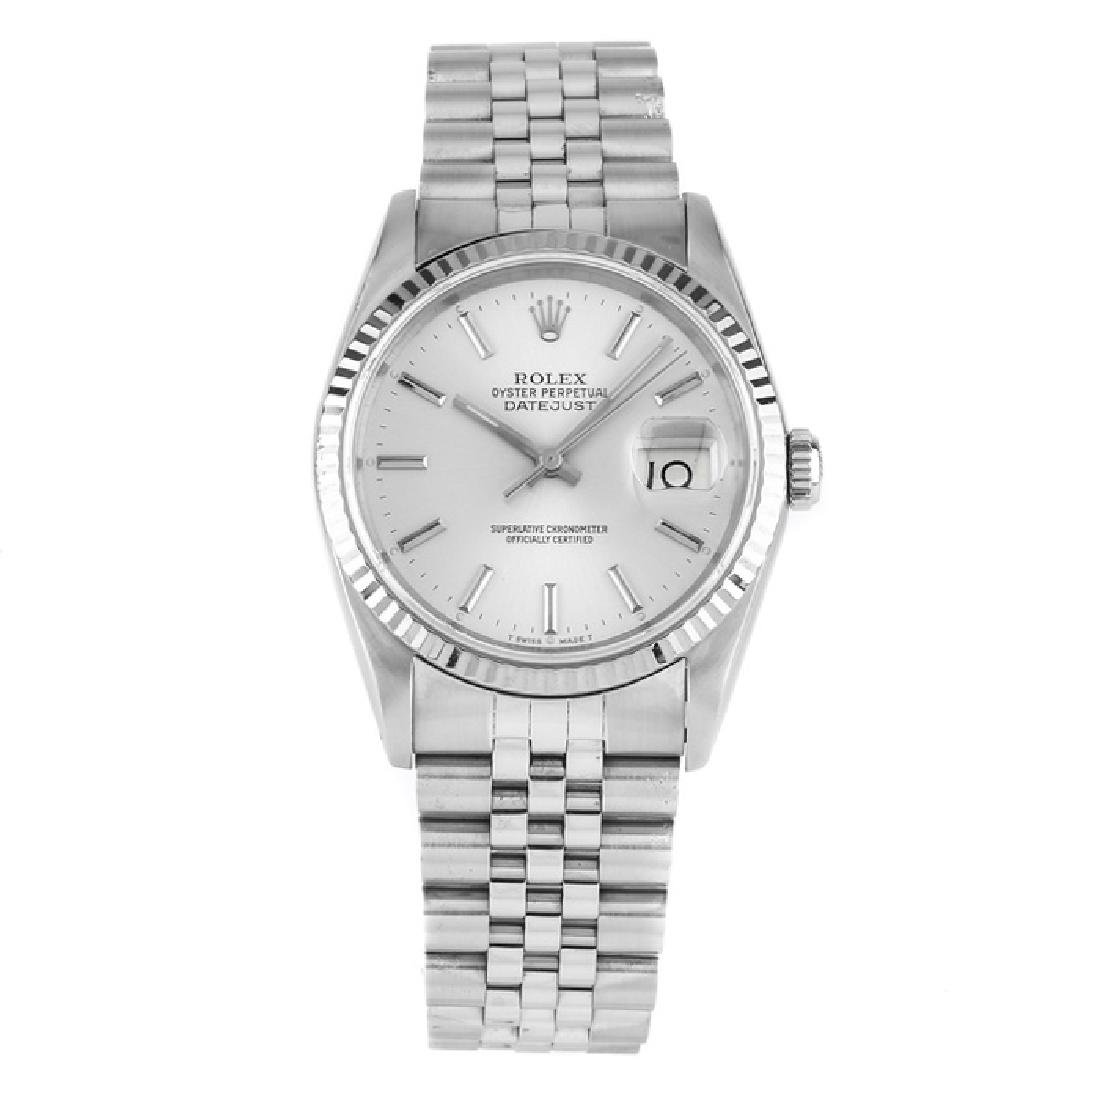 Rolex Oyster Perpetual Datejust 16234